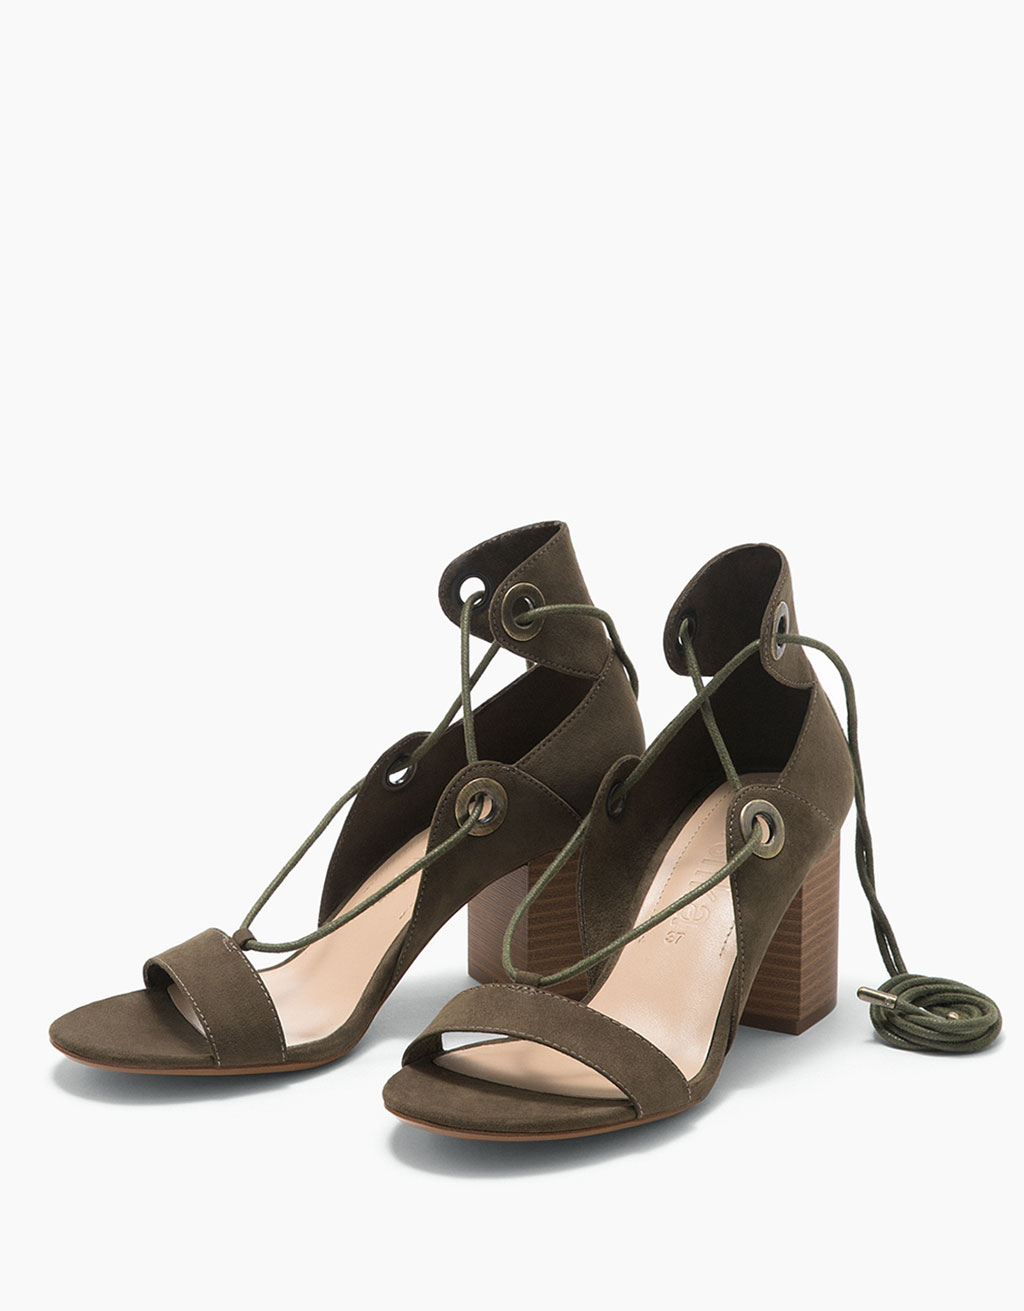 Tied mid-heeled sandals with grommets